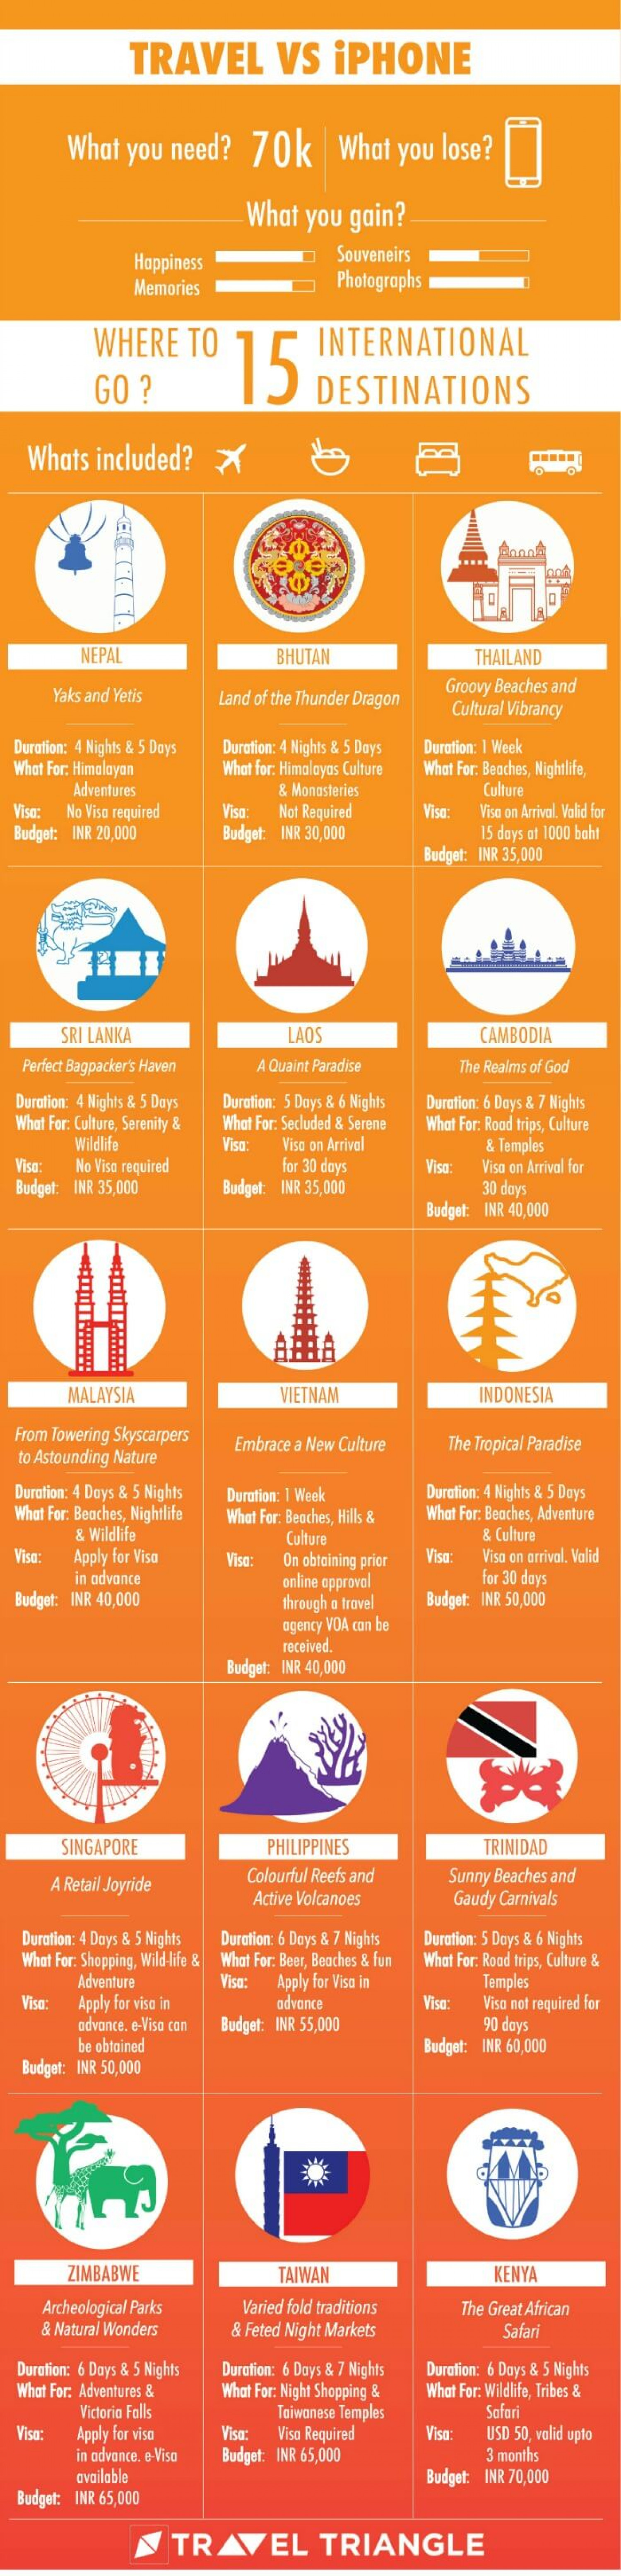 What's Your Pick: An International Trip Or An iPhone? Infographic